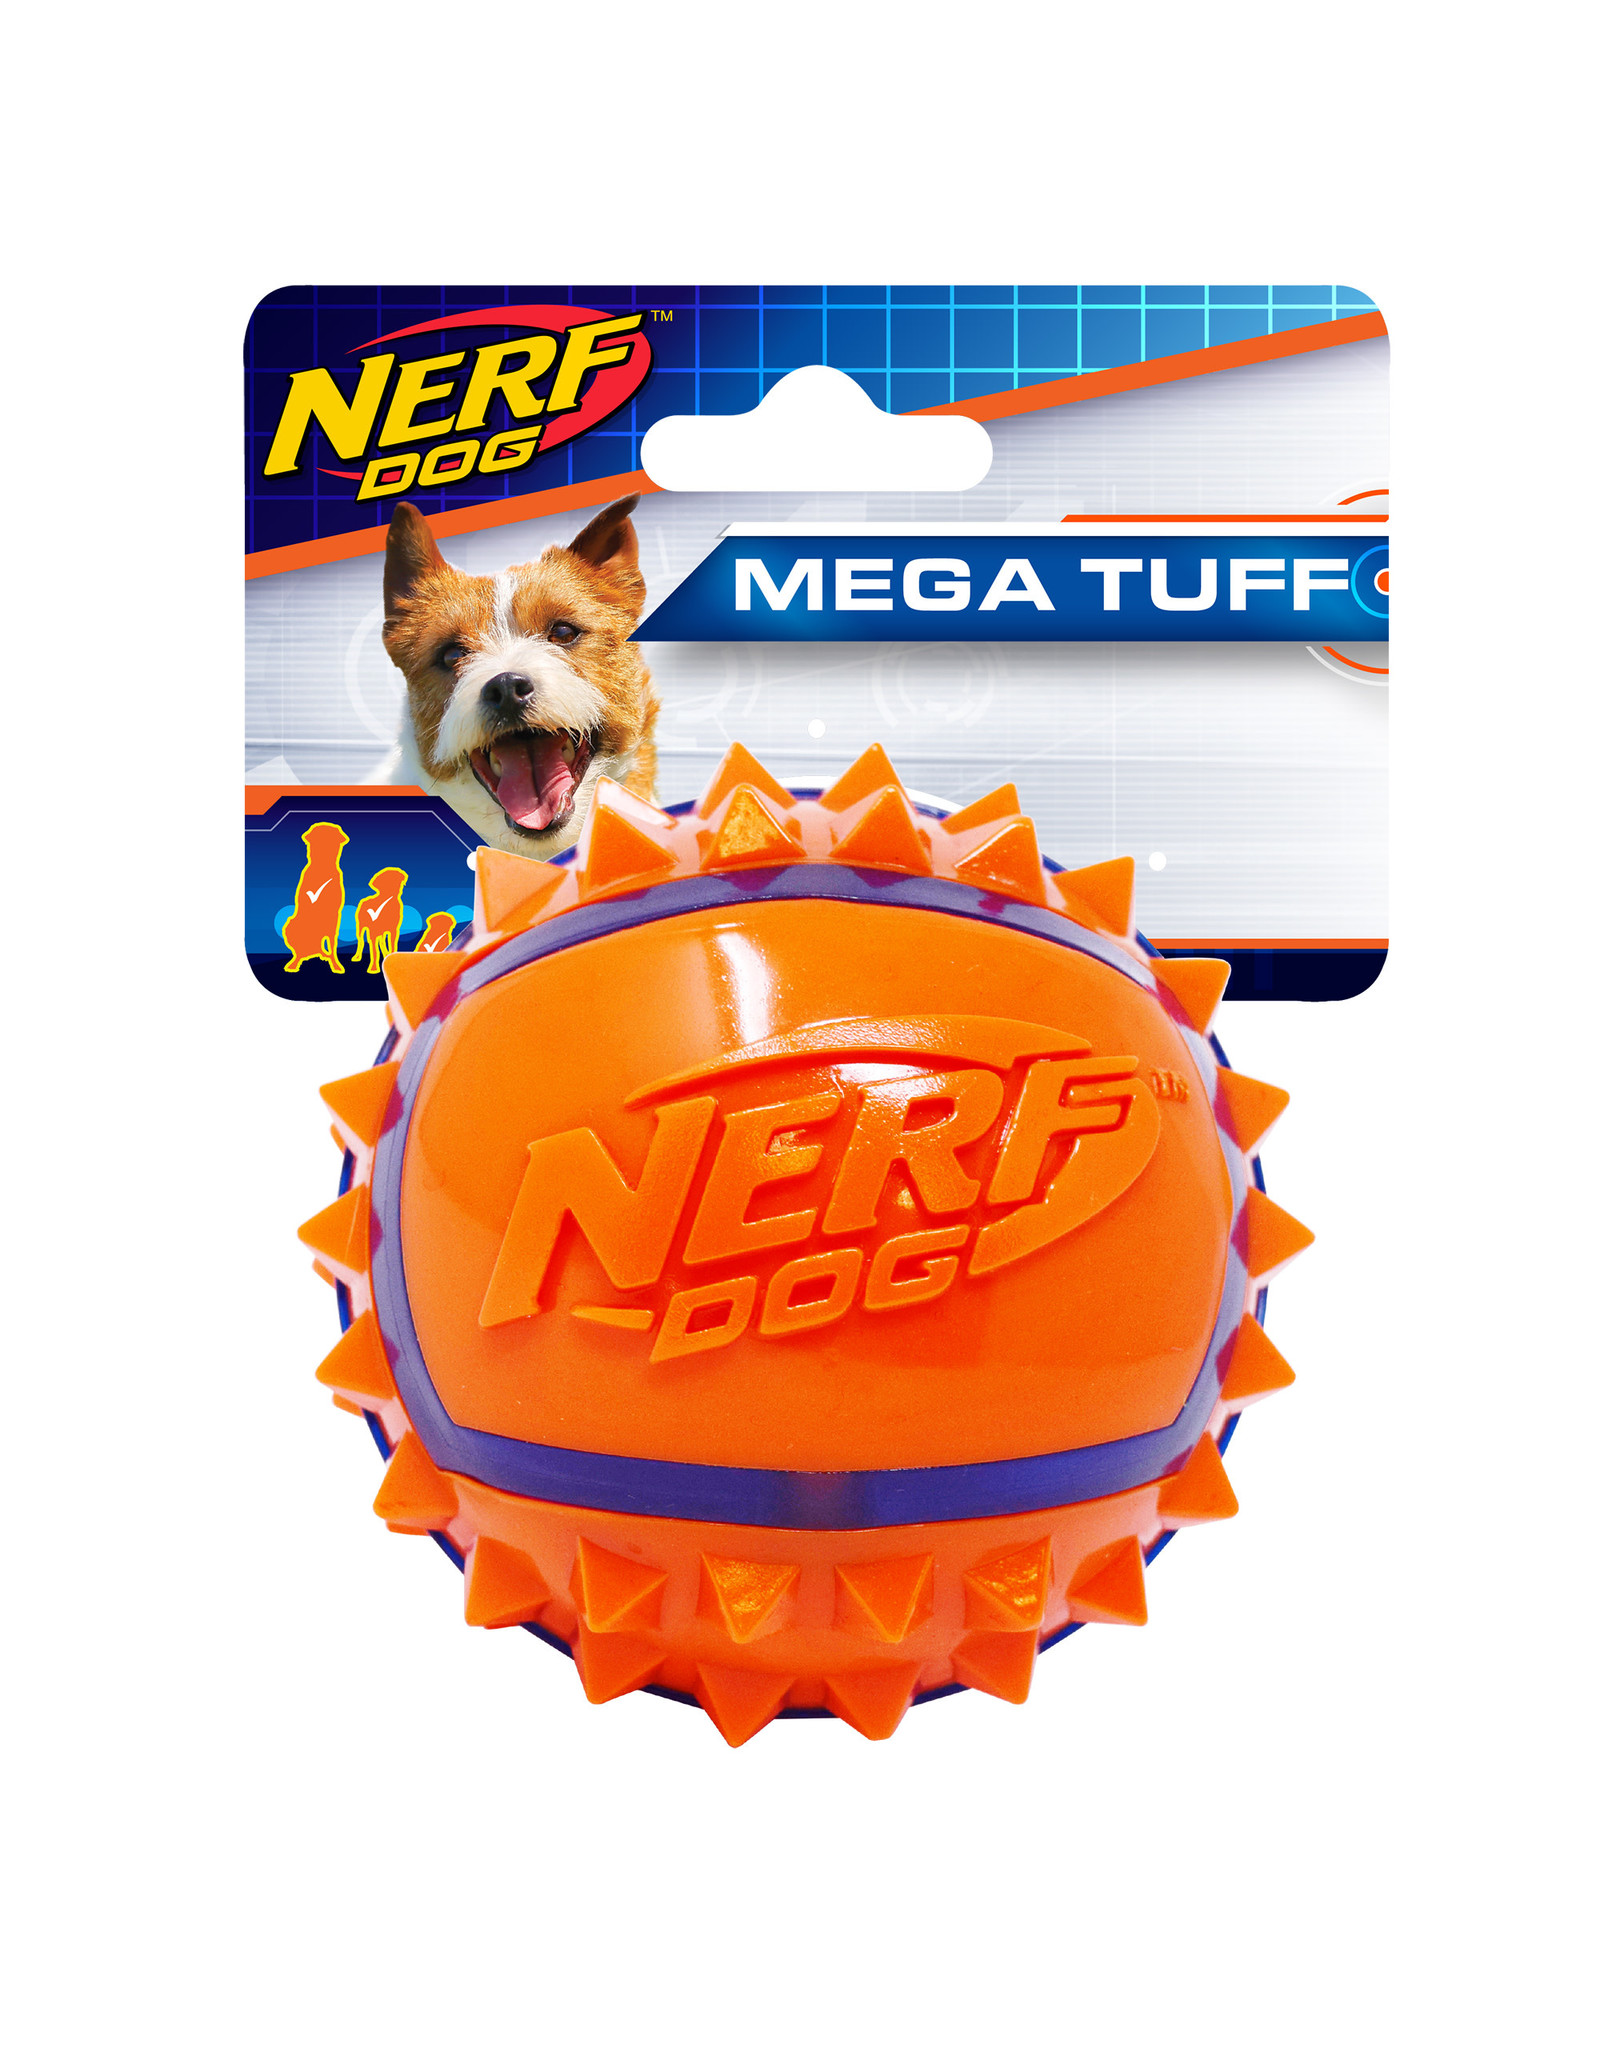 Nerf Nerf Dog Two-Tone TPR Spike Ball - Small - 2.5 in